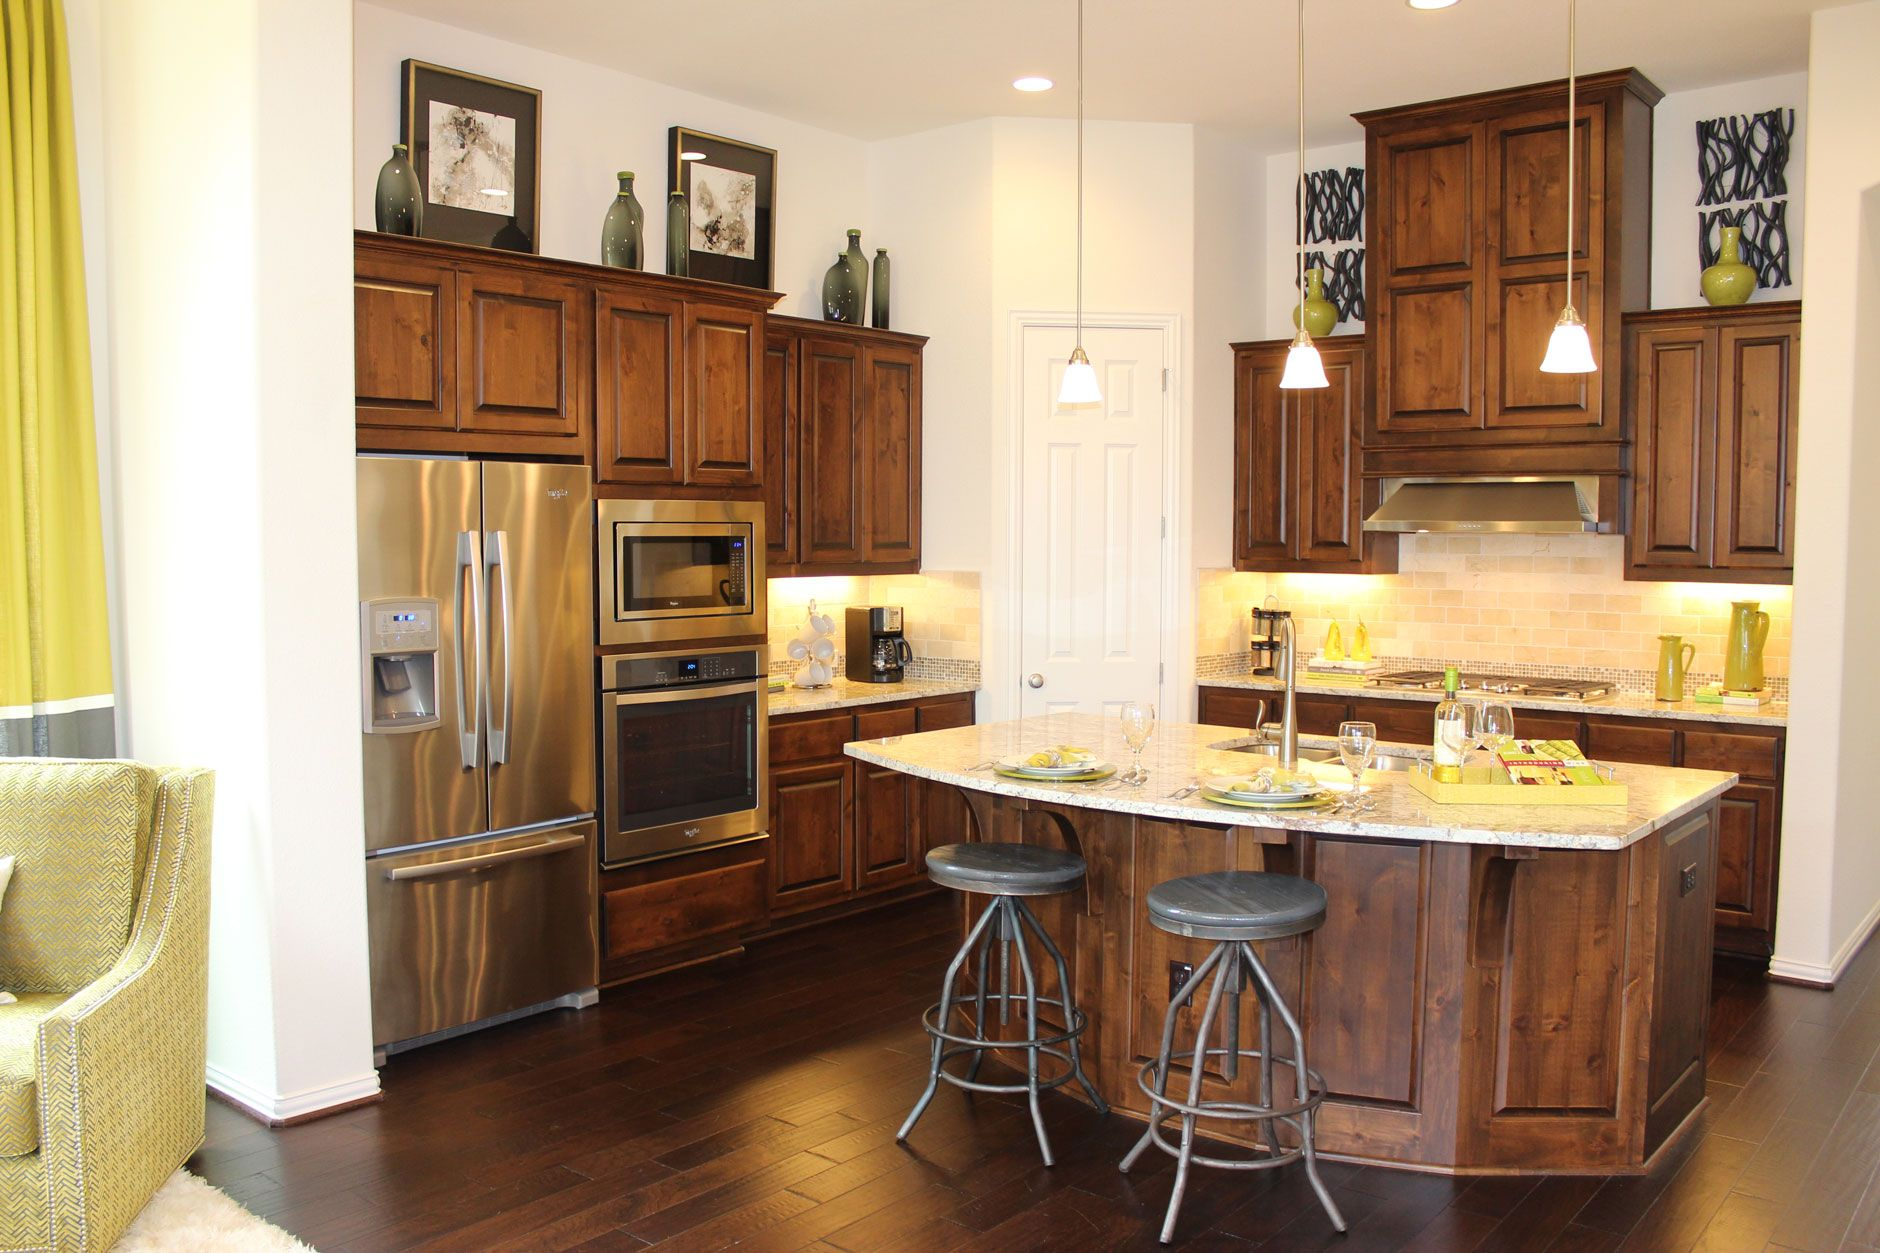 Model Home With Knotty Alder Cabinet Doors Large Island And Dark Wood Floors Lime Green